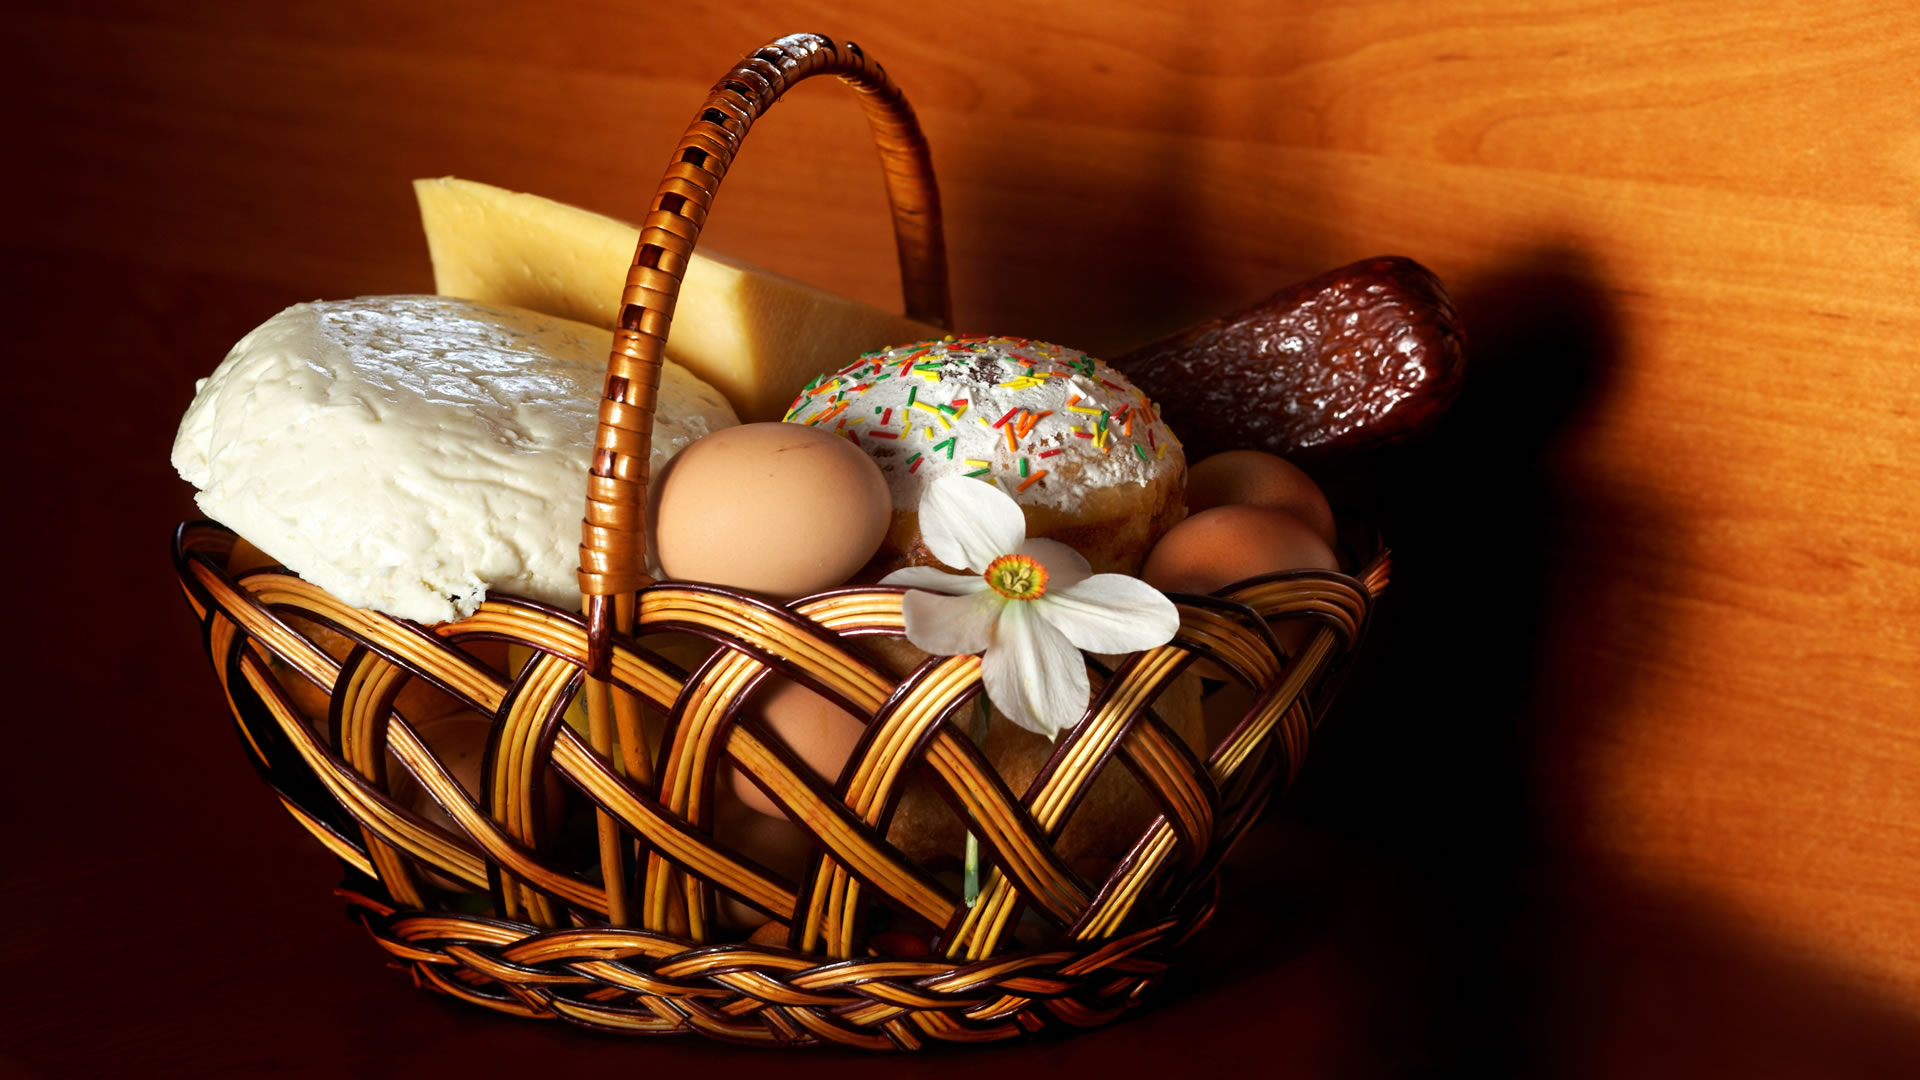 Basket Of Easter Food